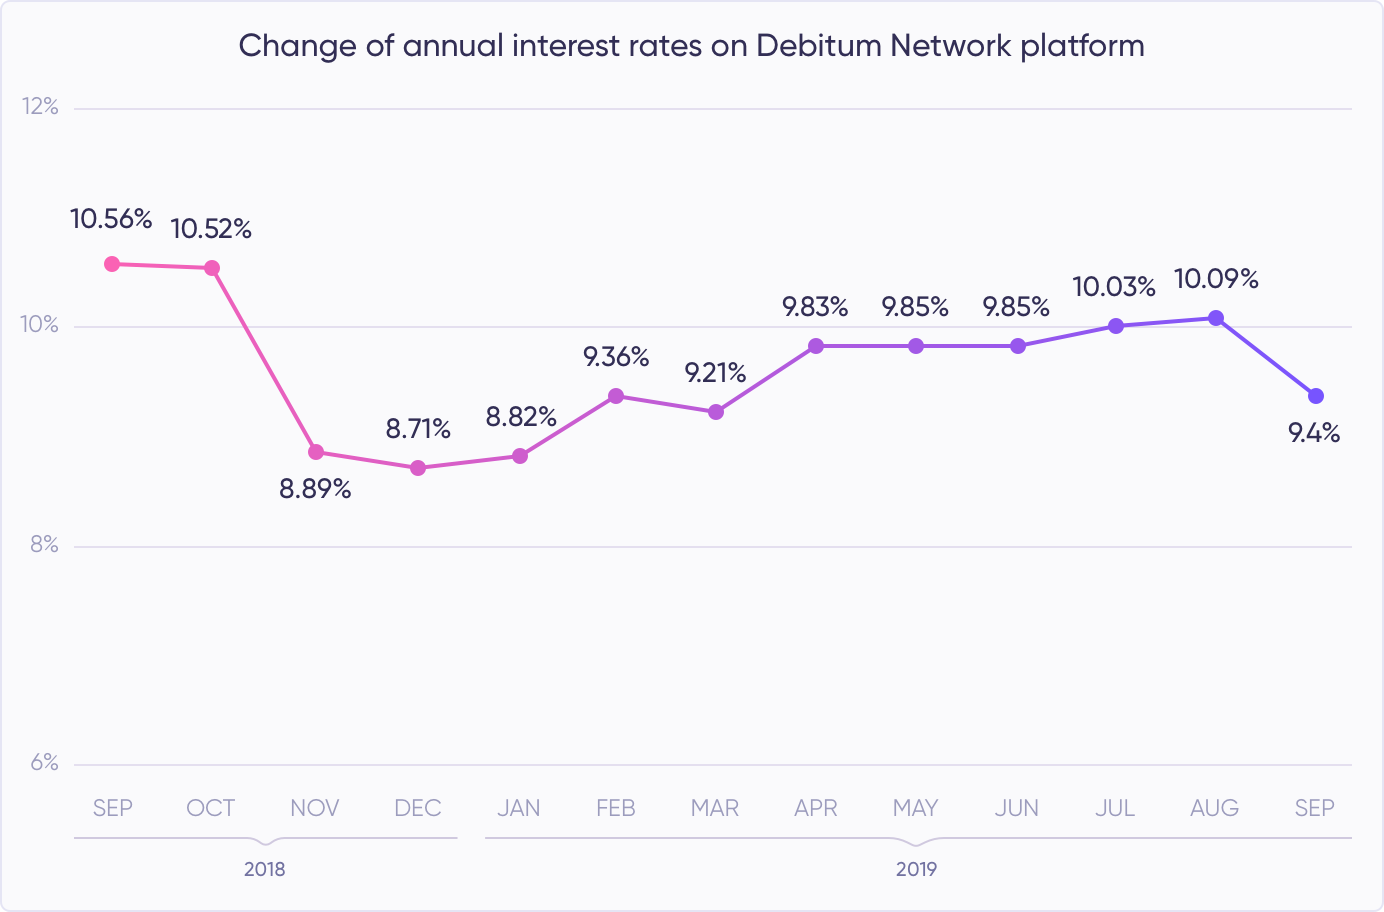 Debitum Network - a leader in interest rates for Invoice Financing loans